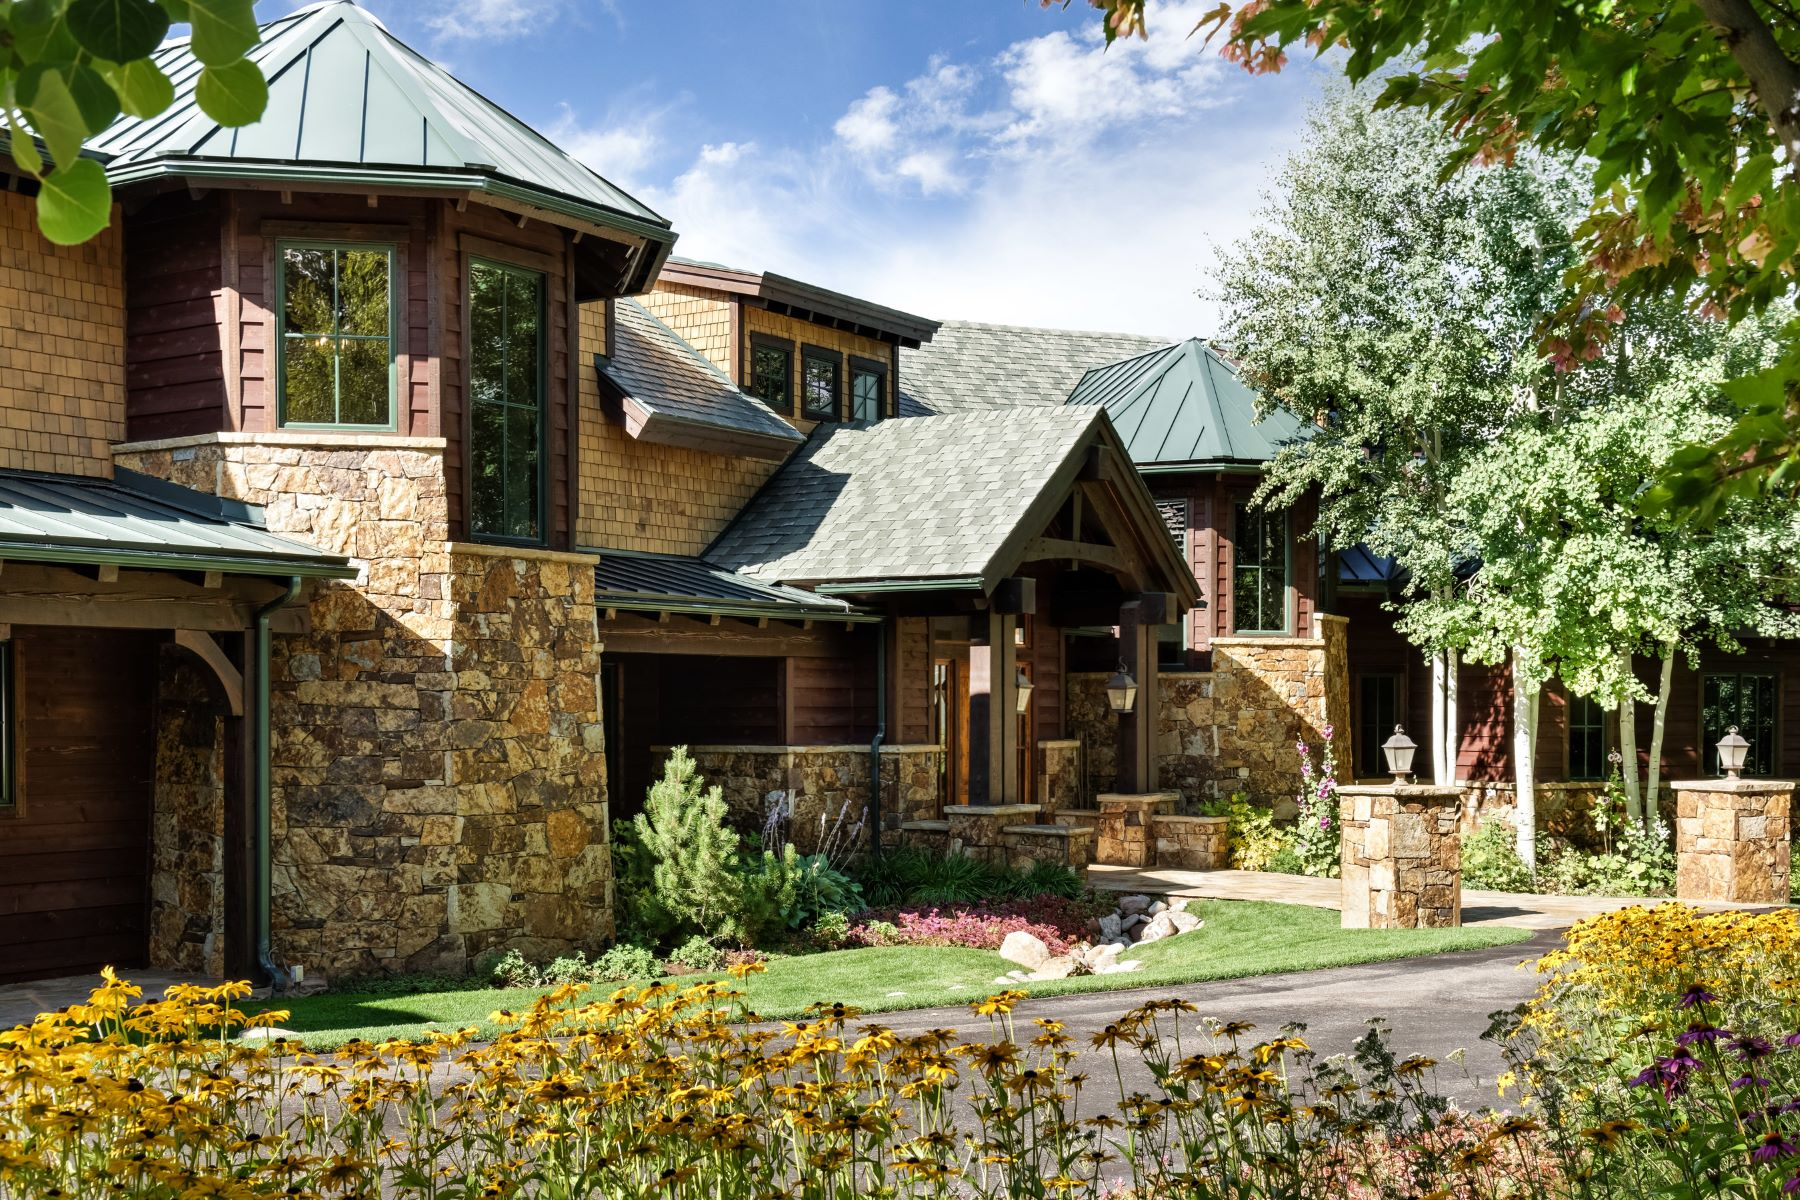 Single Family Home for Sale at Magnificent Panorama in McLain Flats 2016 McLain Flats Road Aspen, Colorado, 81611 United States